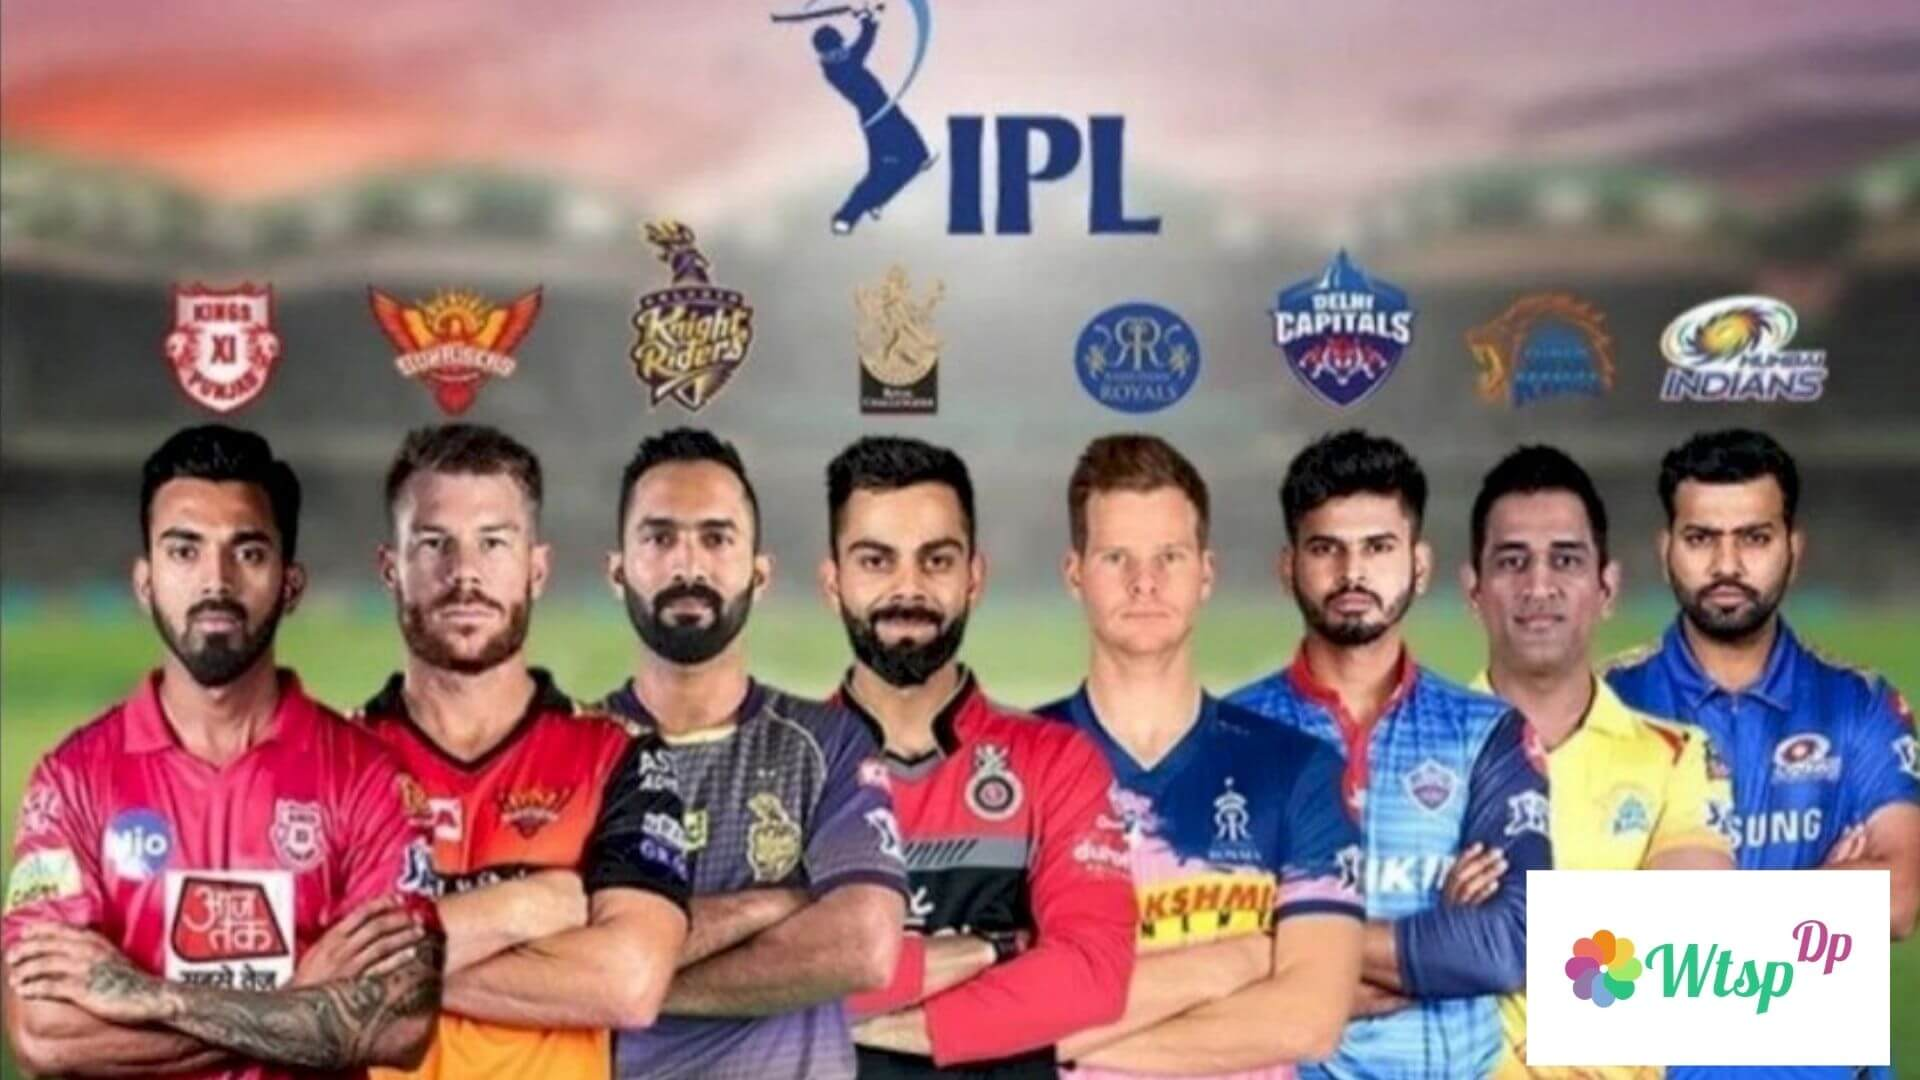 IPL favorite team WhatsApp DP images